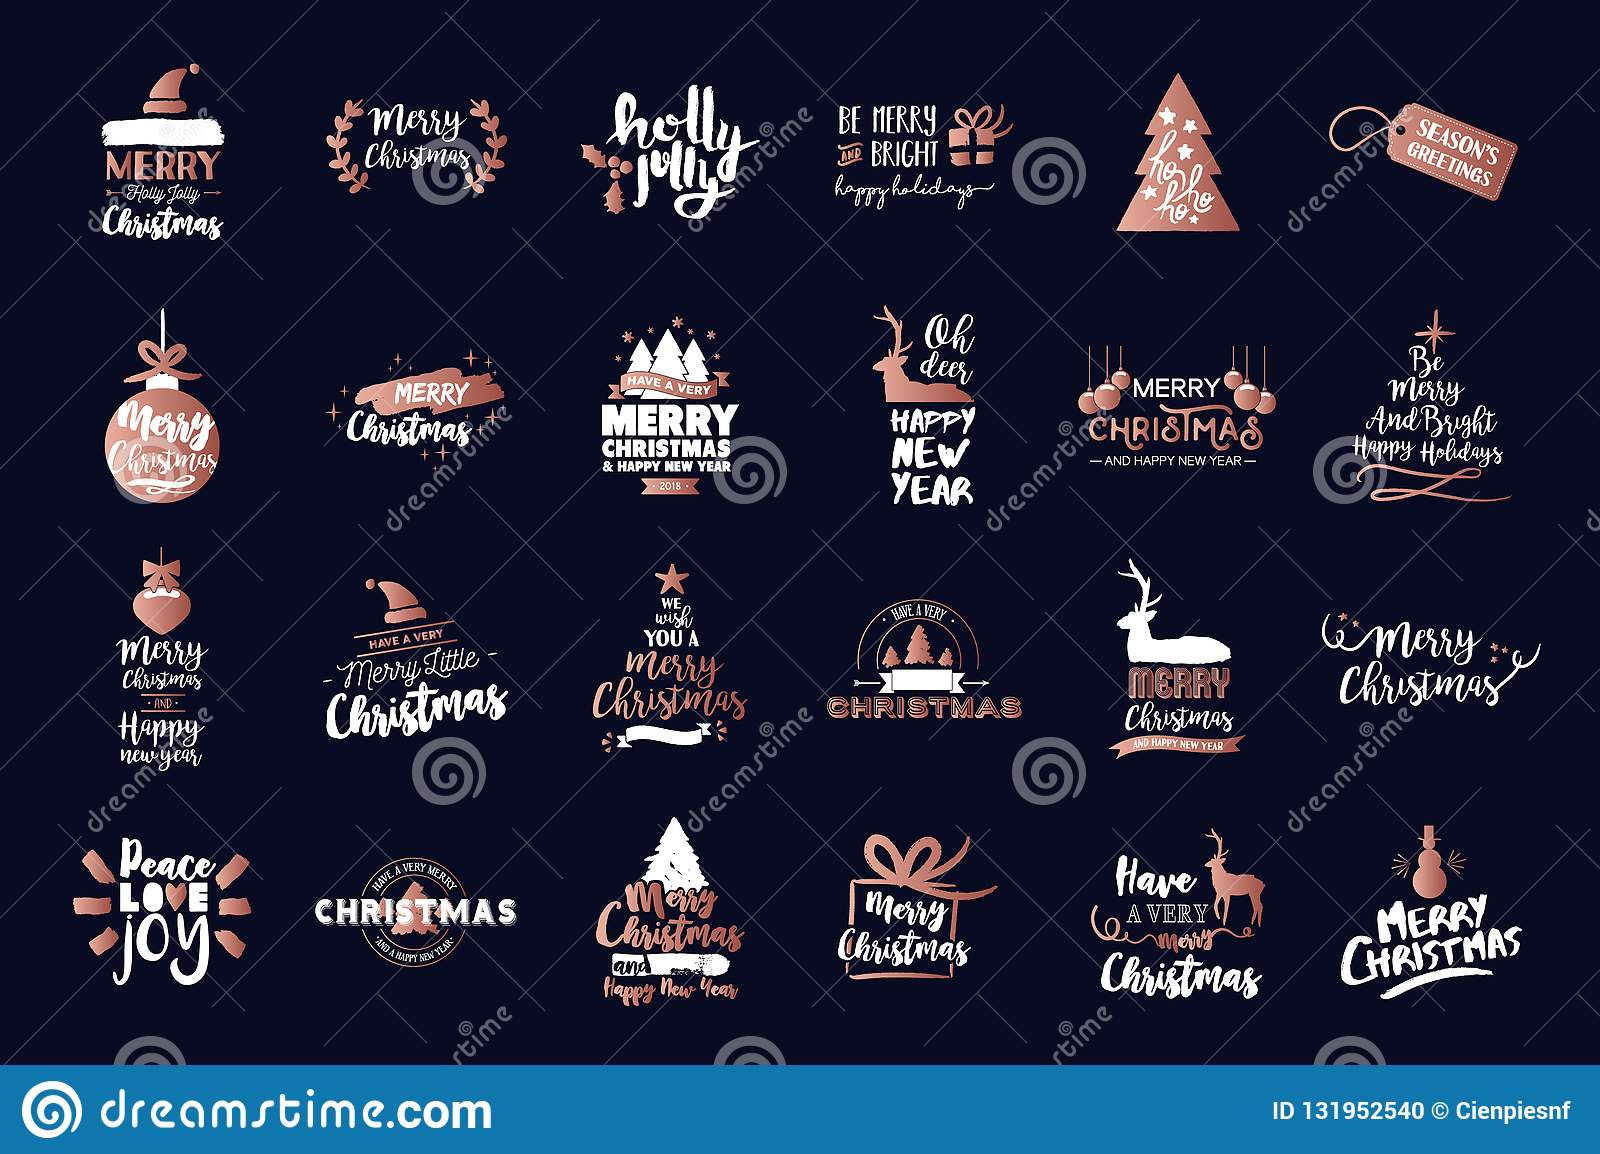 Merry Christmas luxury copper text quote set